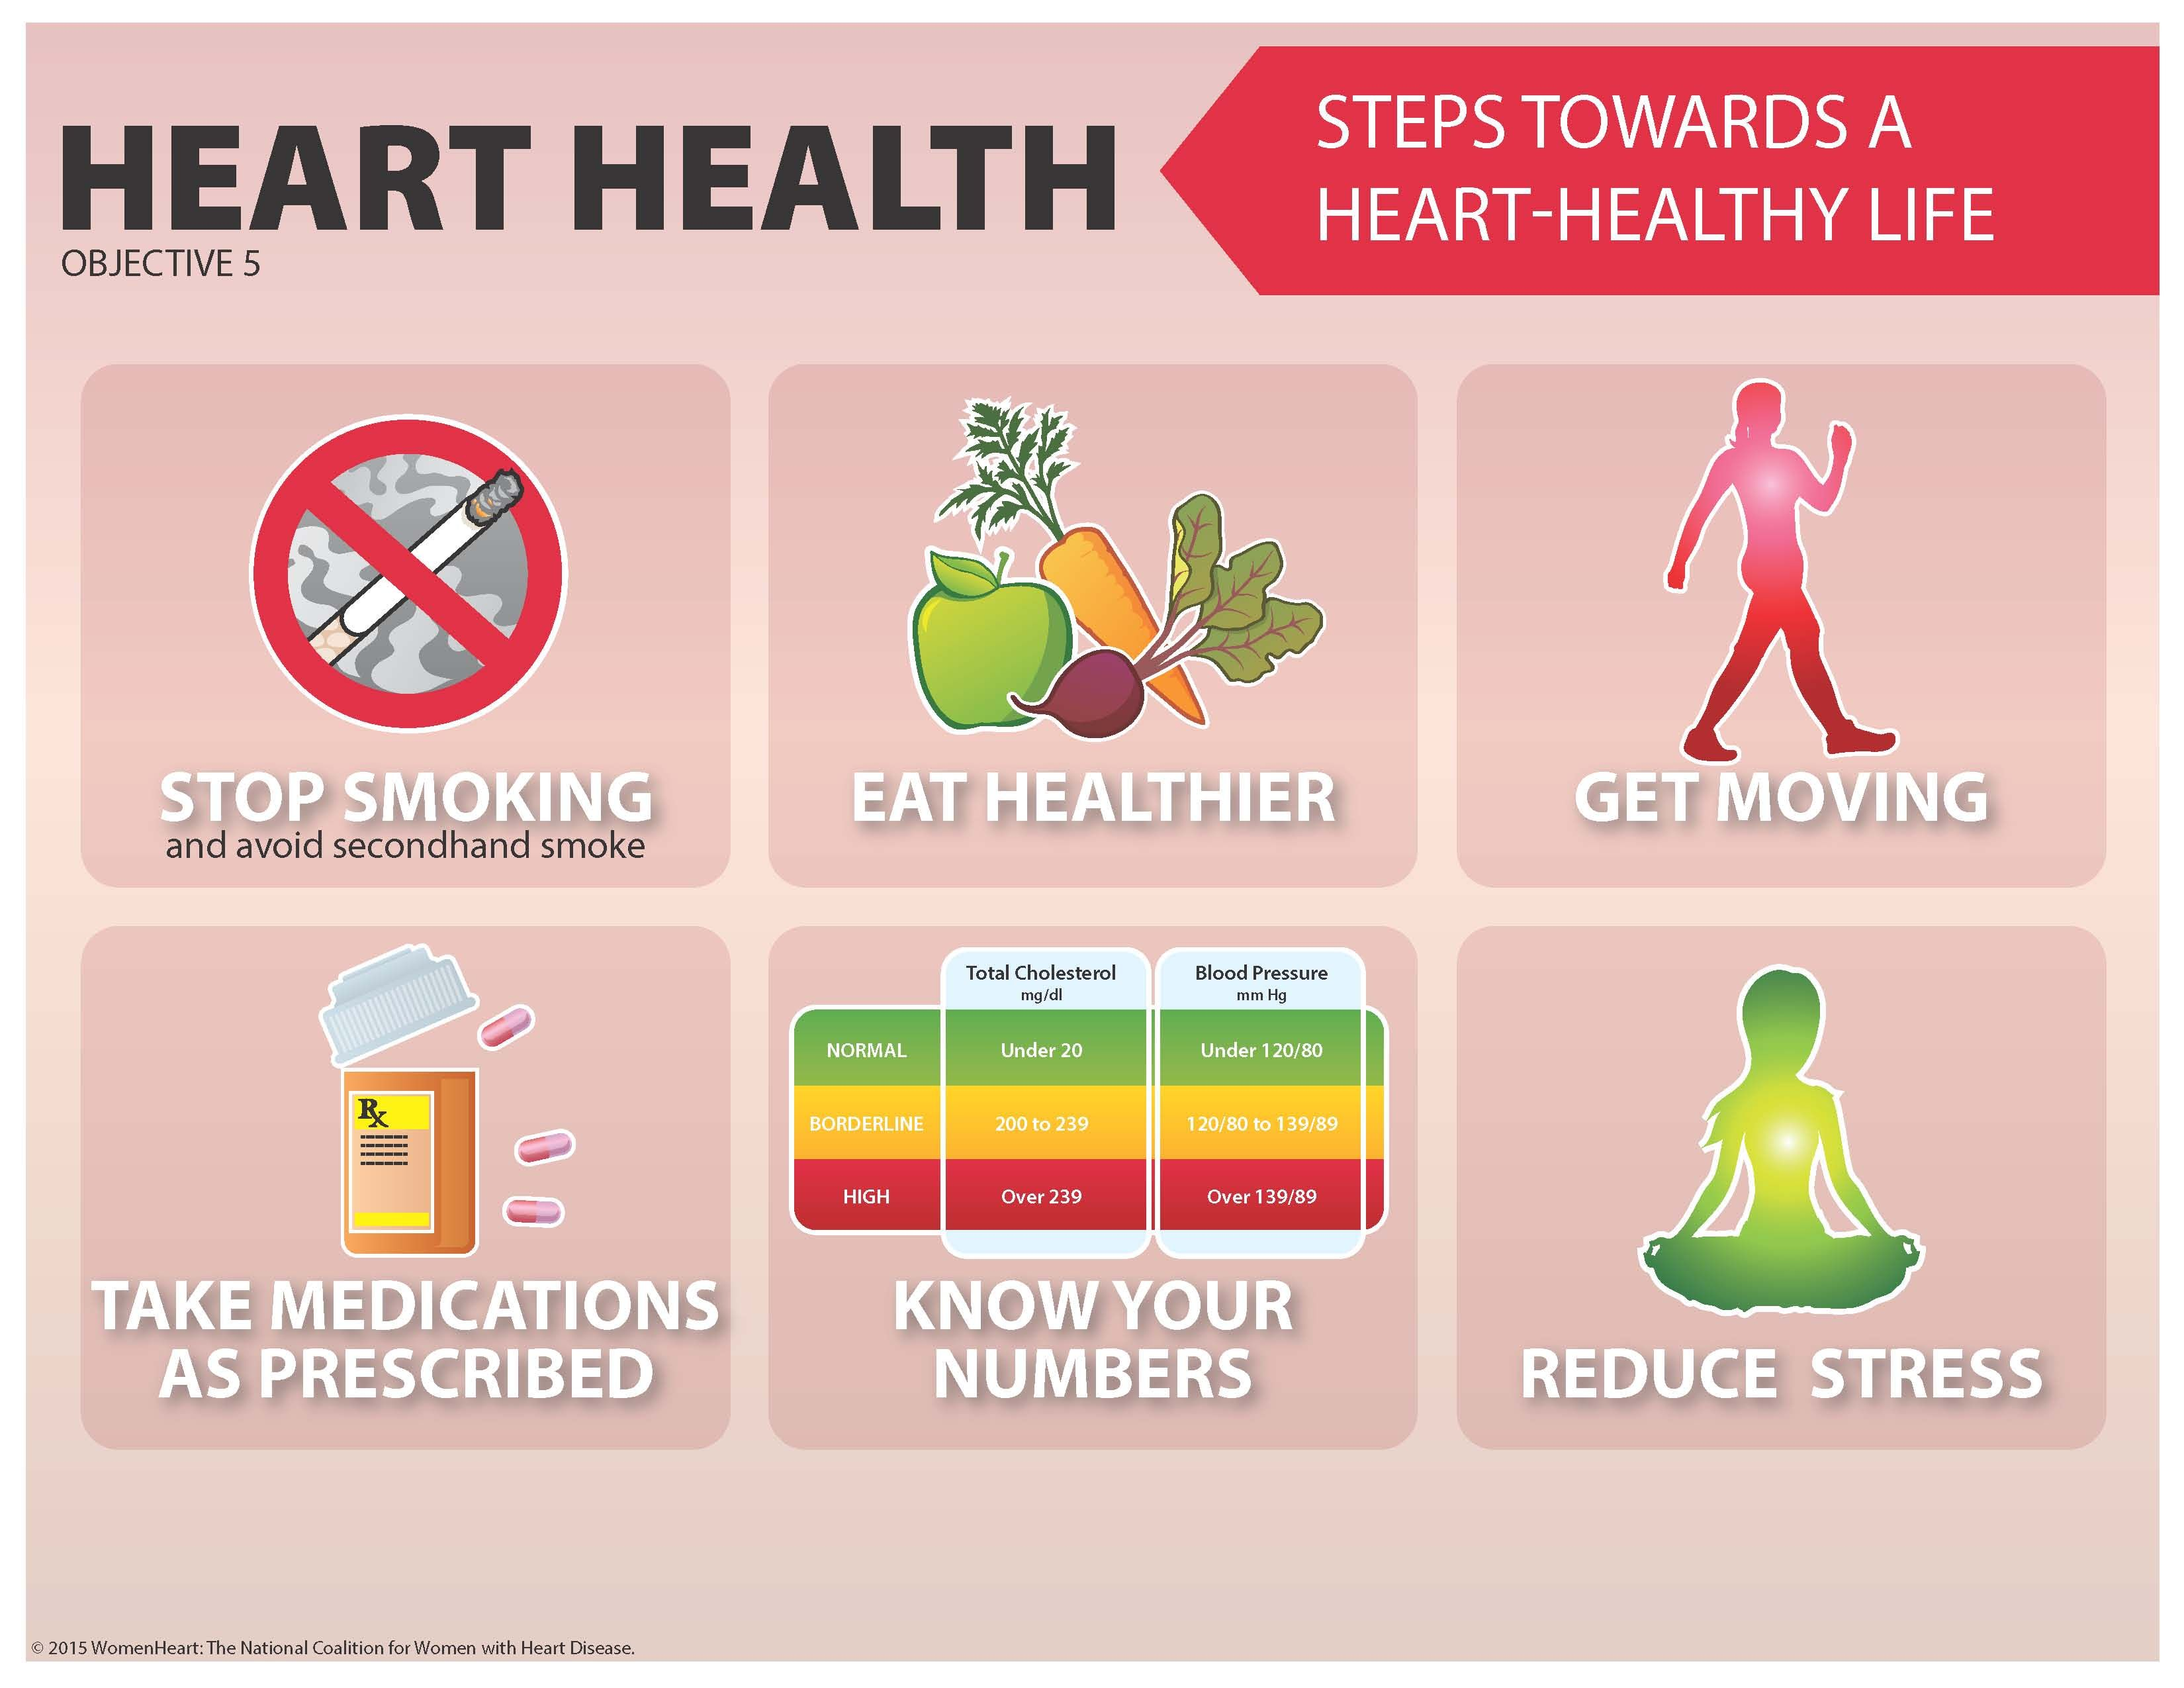 Heart Healthy Lifestyle Changes